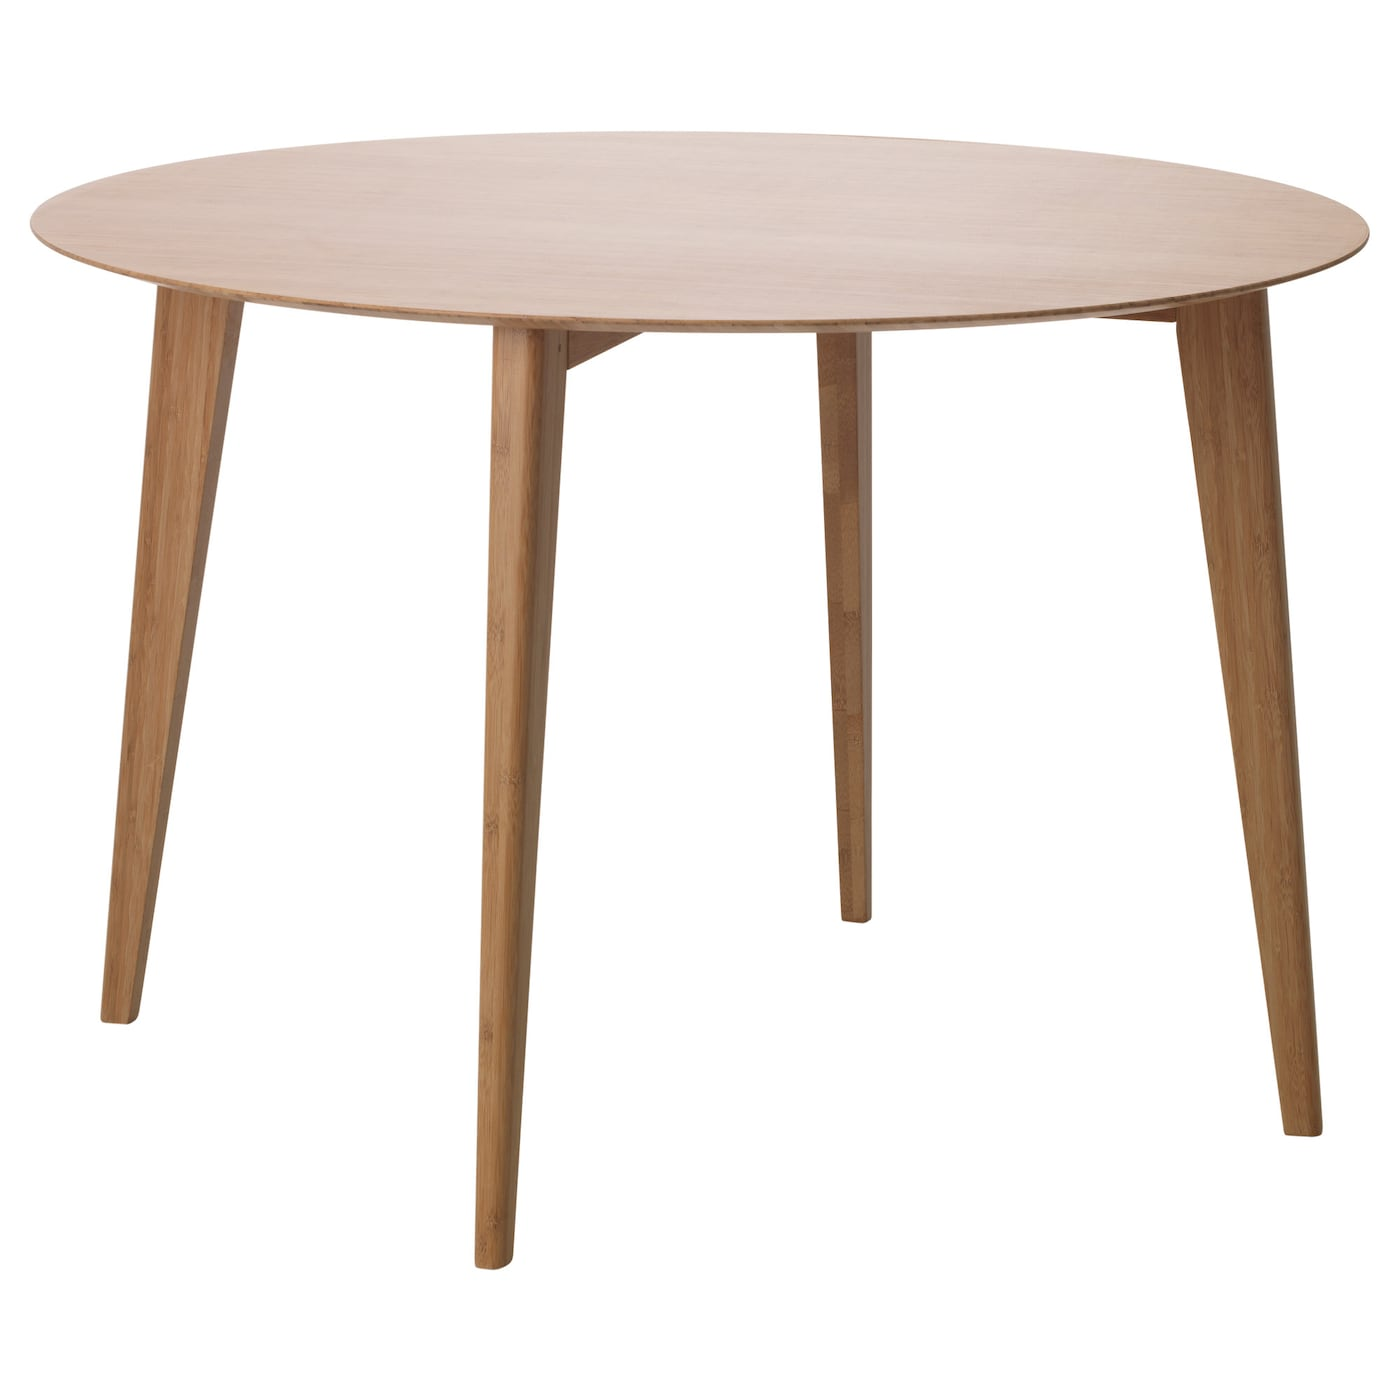 Finede dining table bamboo 80 cm ikea - Dining table images ...